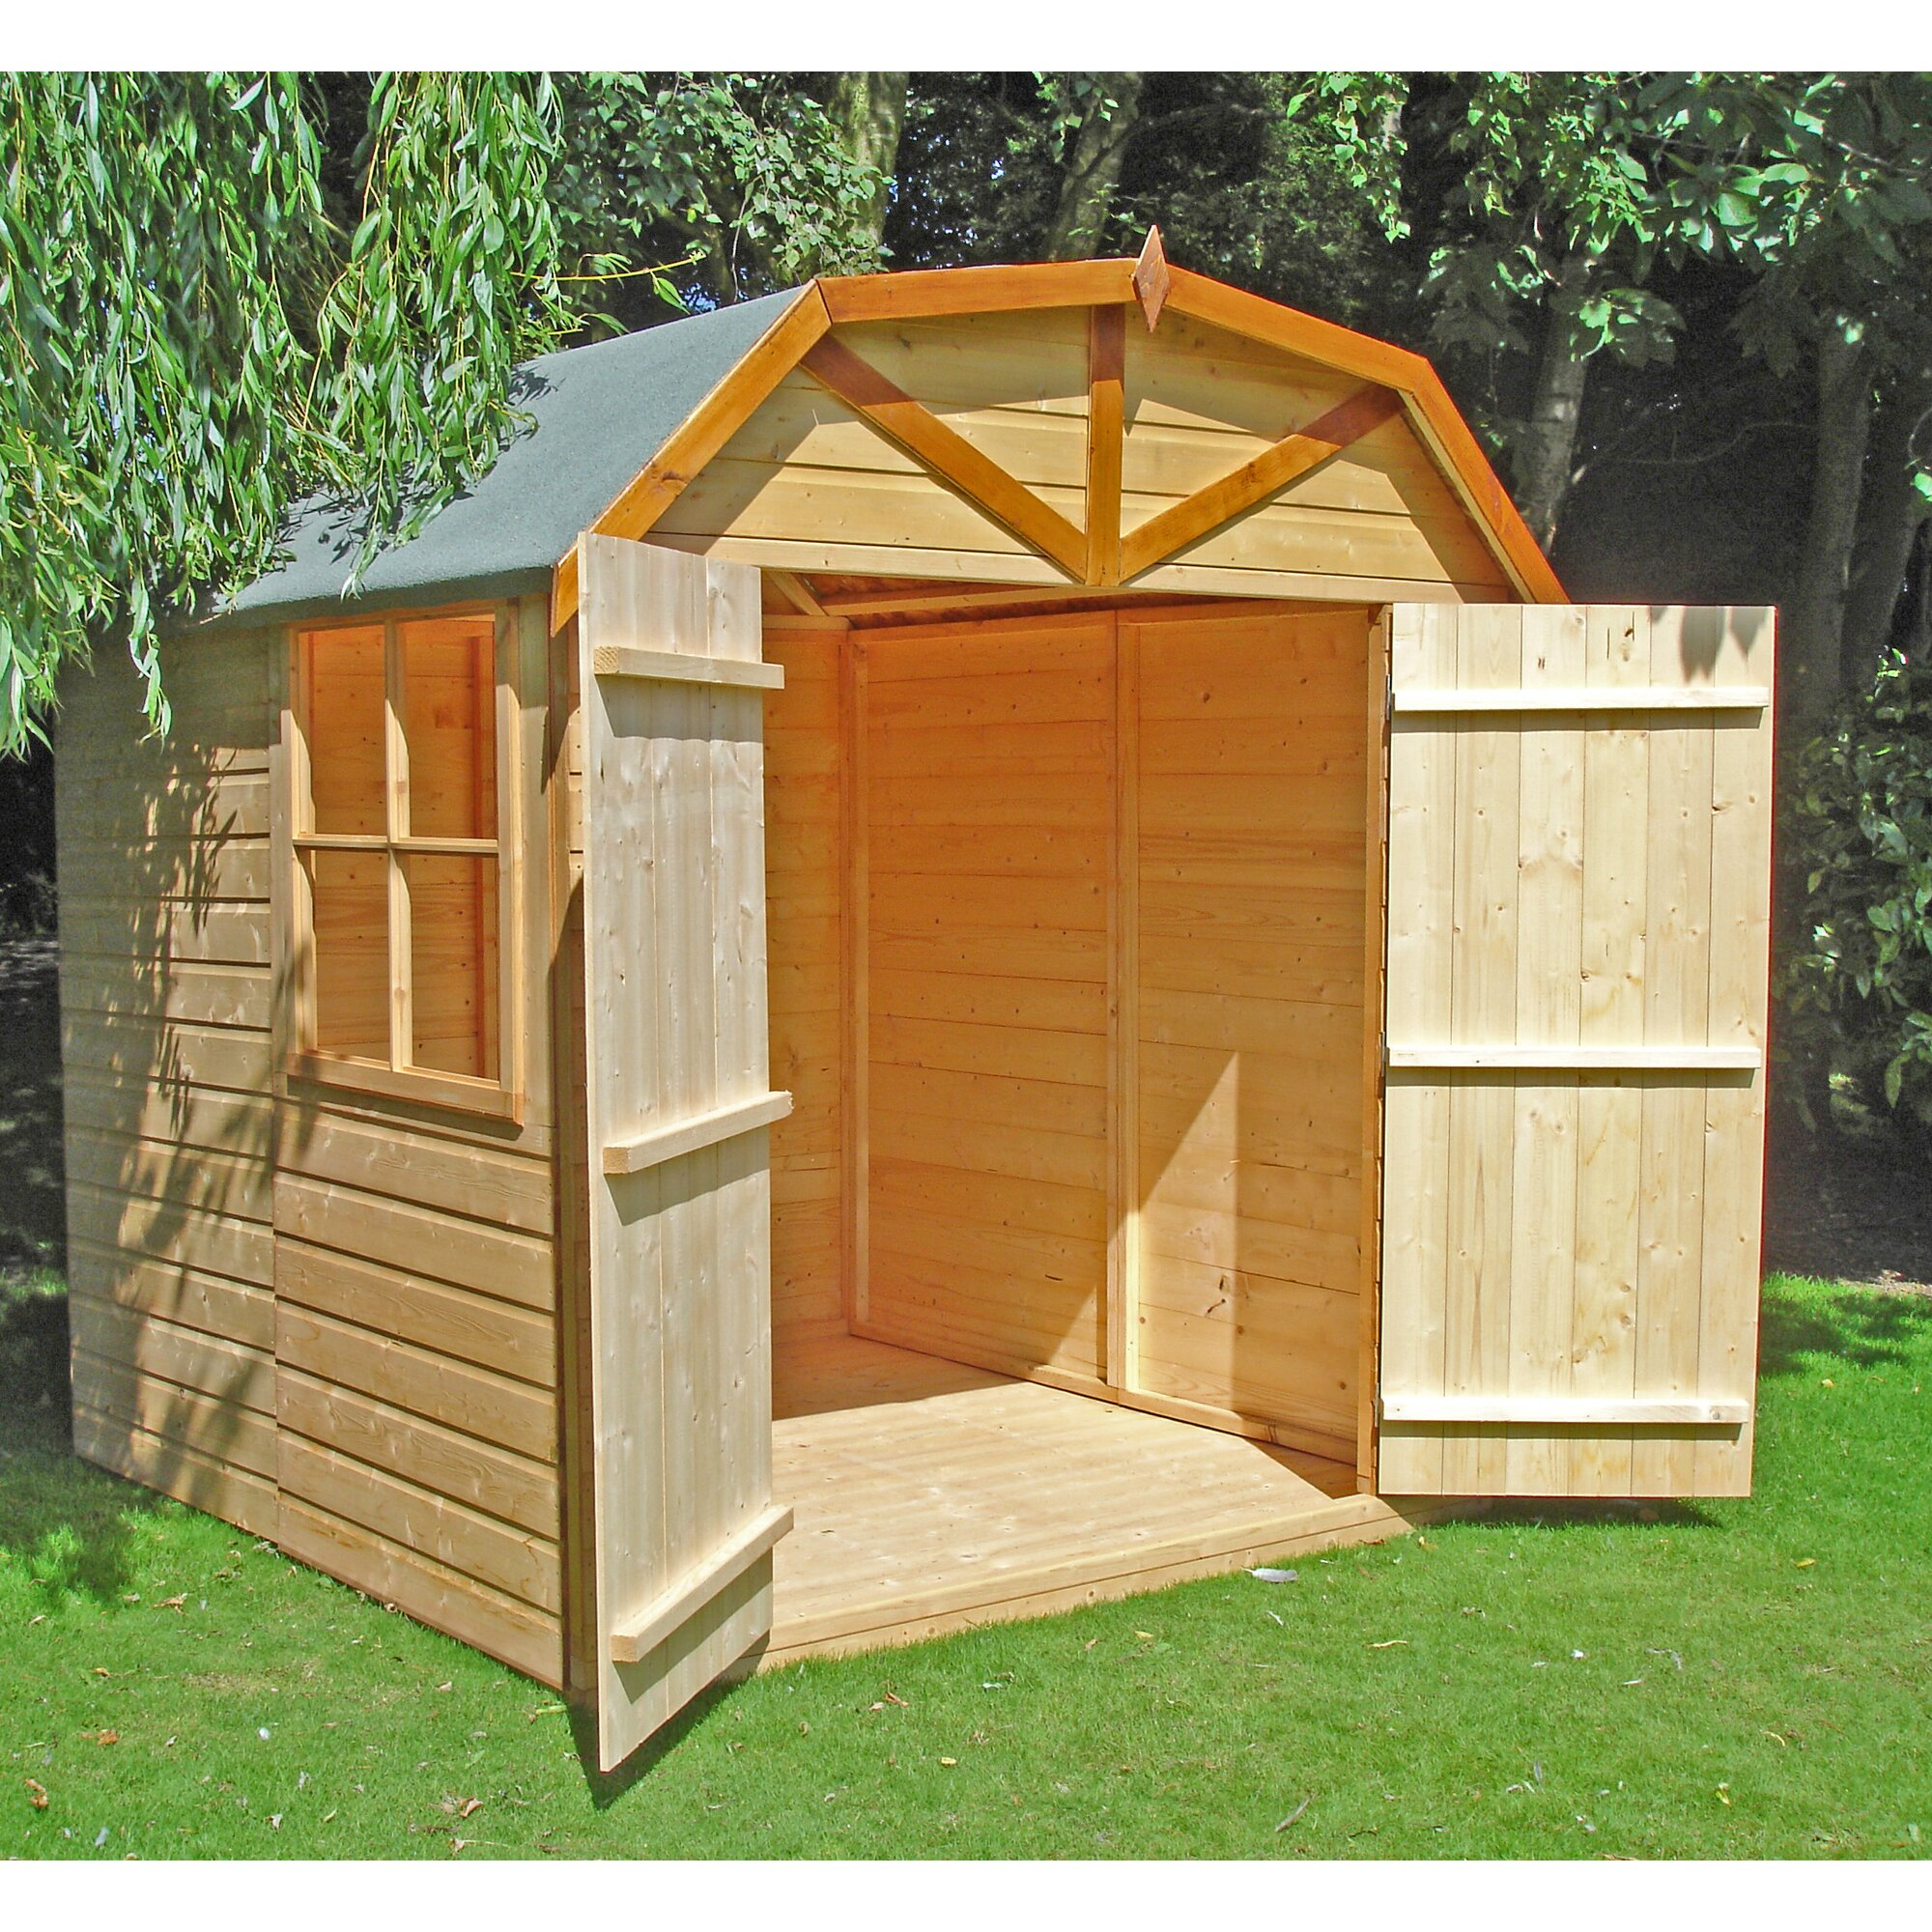 Dcor design 7 x 7 wooden storage shed reviews wayfair for Garden shed 7 x 5